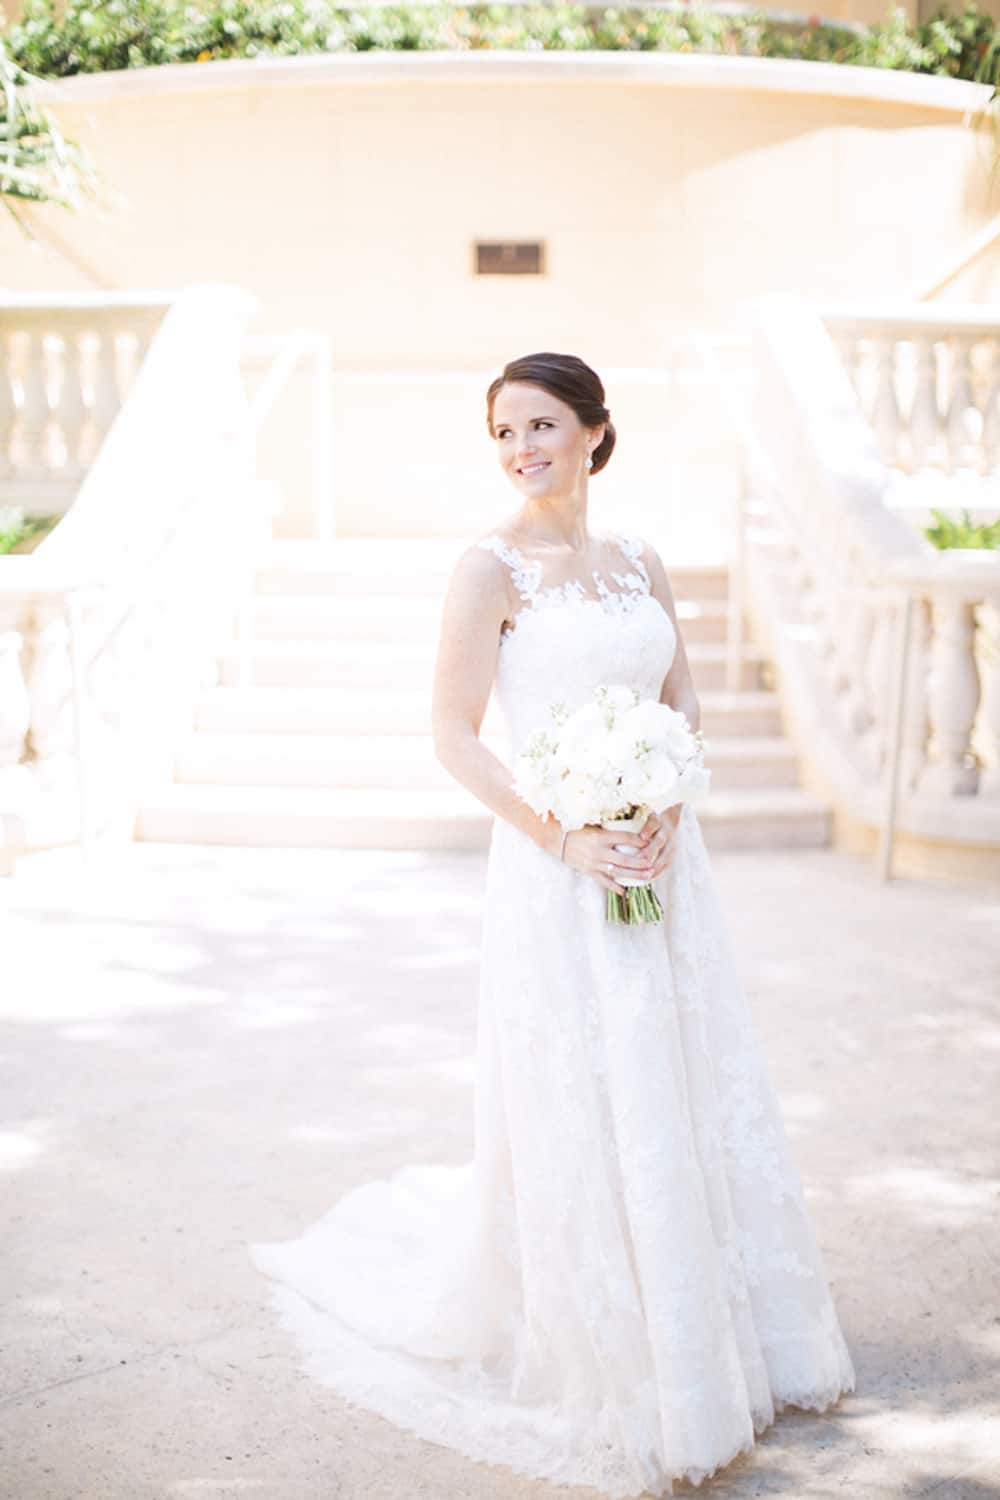 8 Smith_Sikes_HunterRyanPhoto_ritzcarltonsarasotafloridadestinationweddinghunterryanphoto9919_low